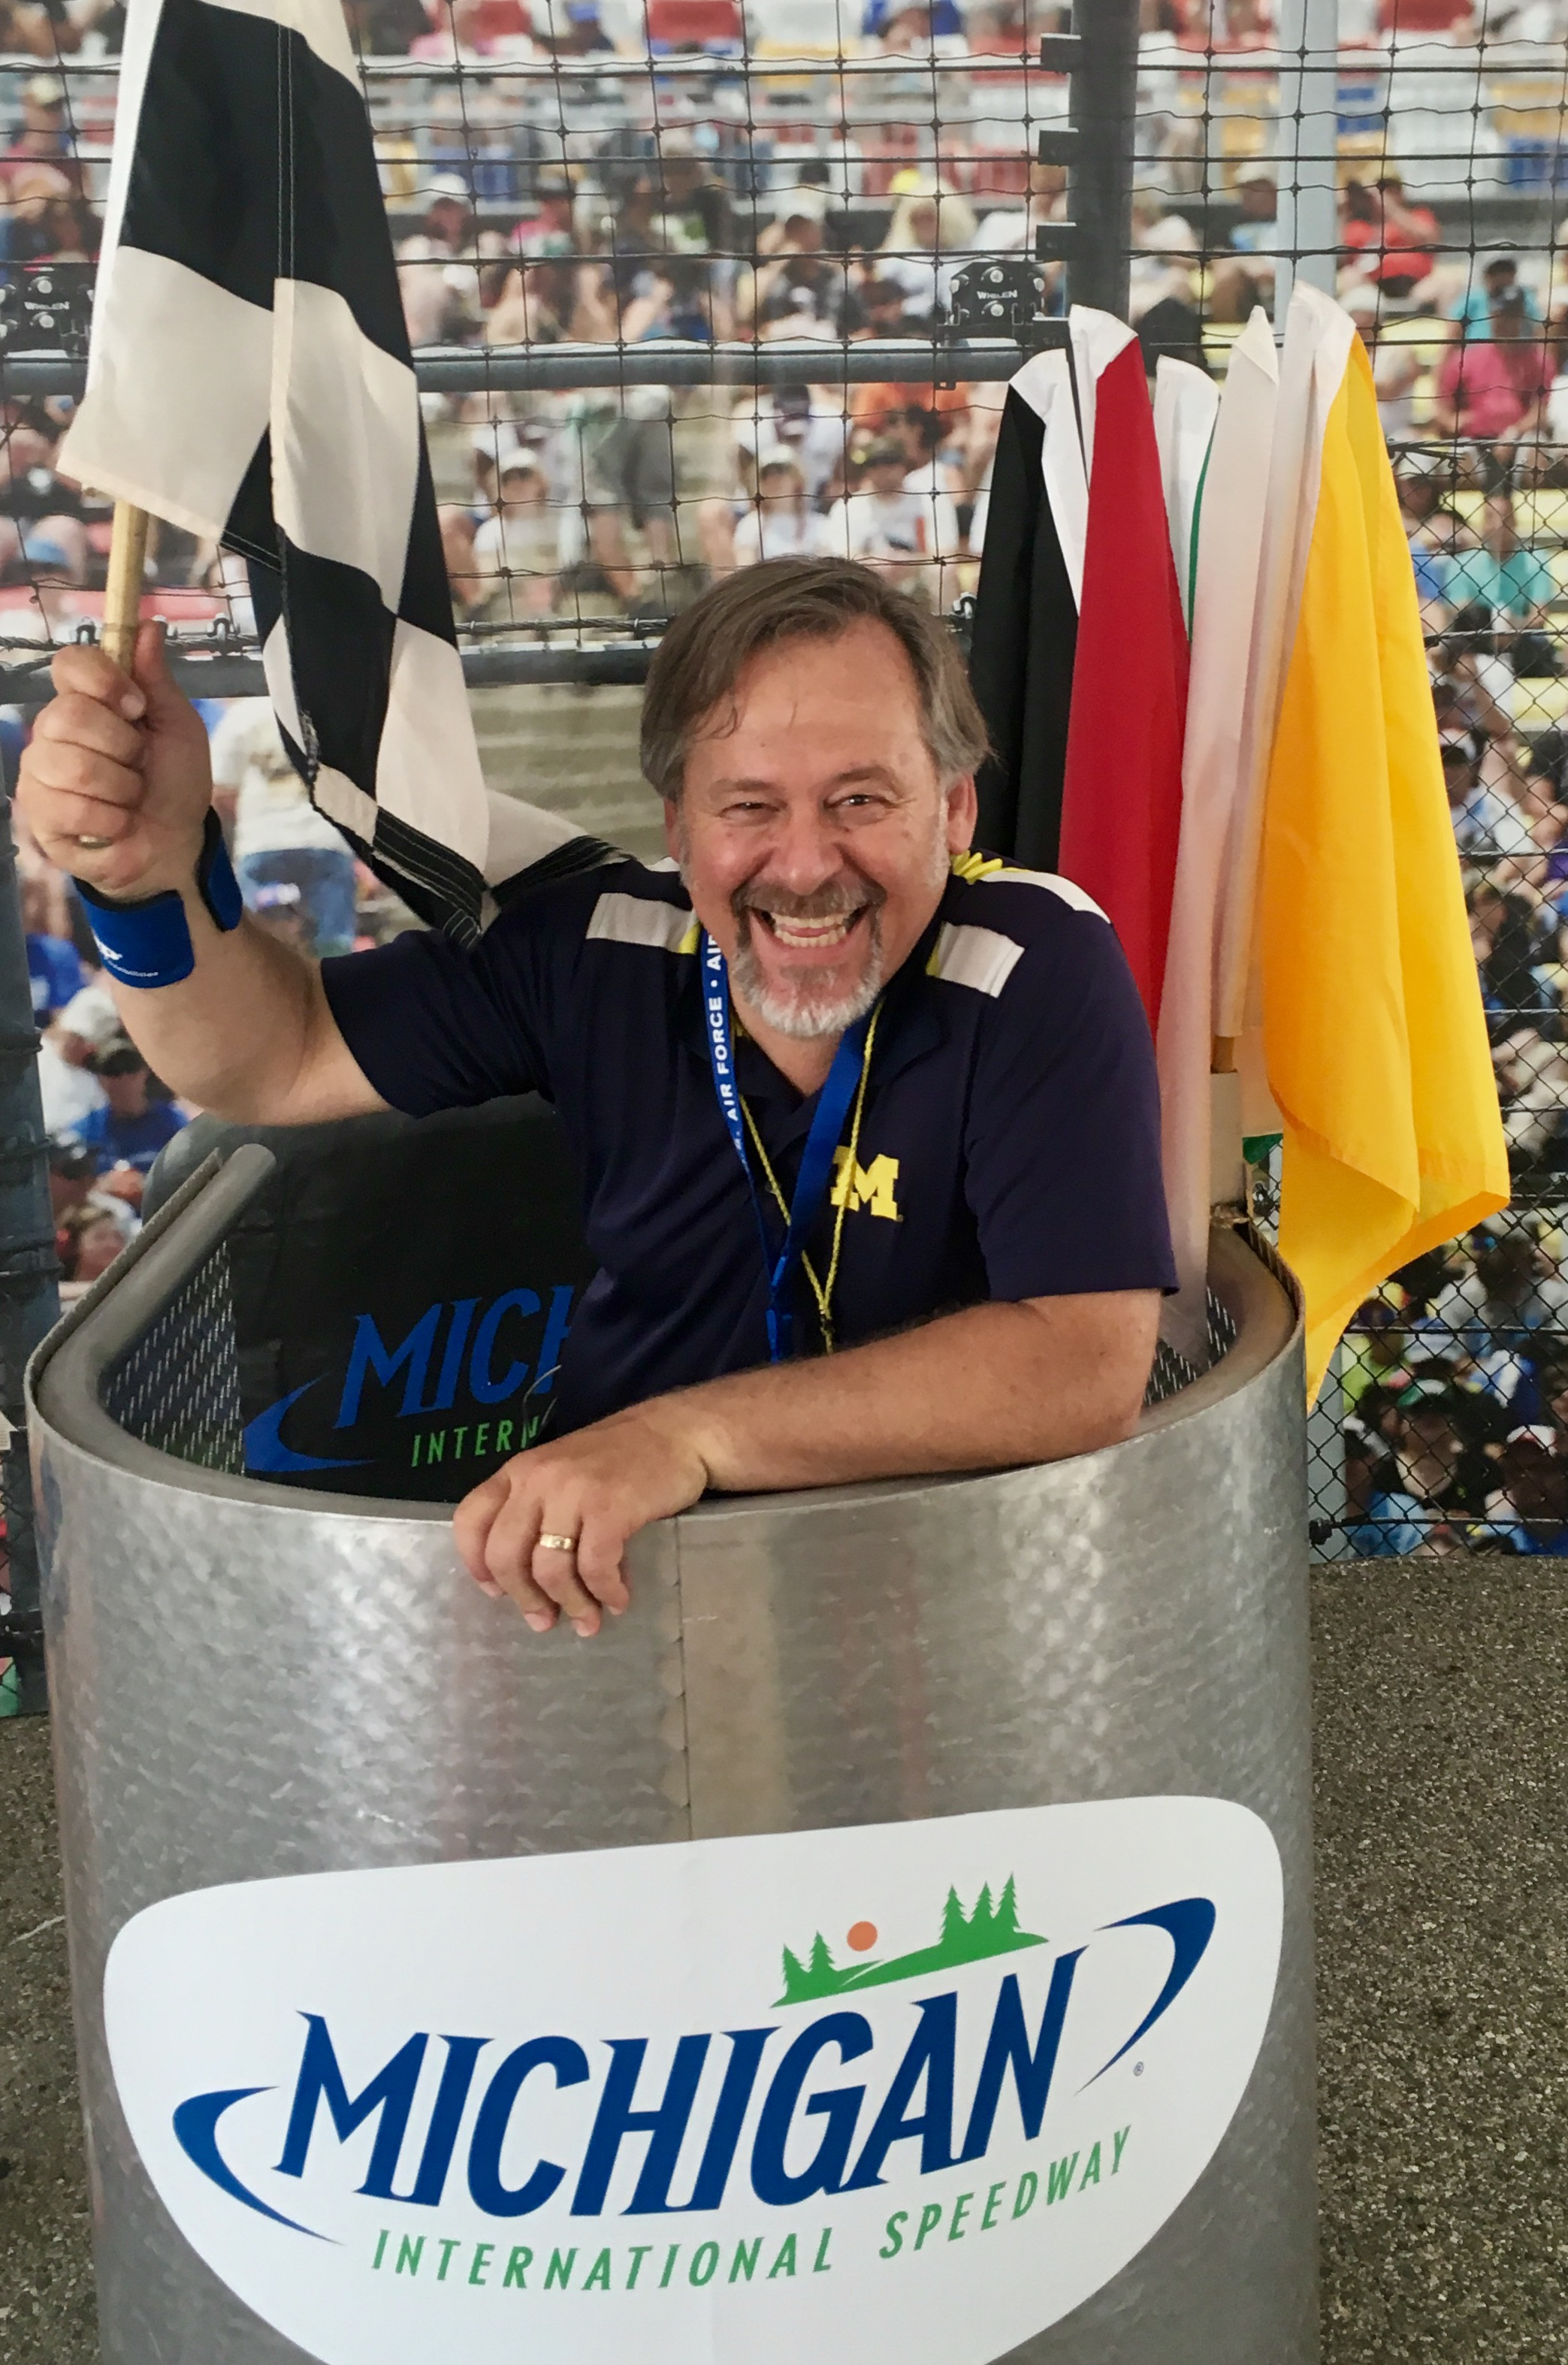 man in a blue shirt holding a checkered flag while standing in a michigan international speedway booth